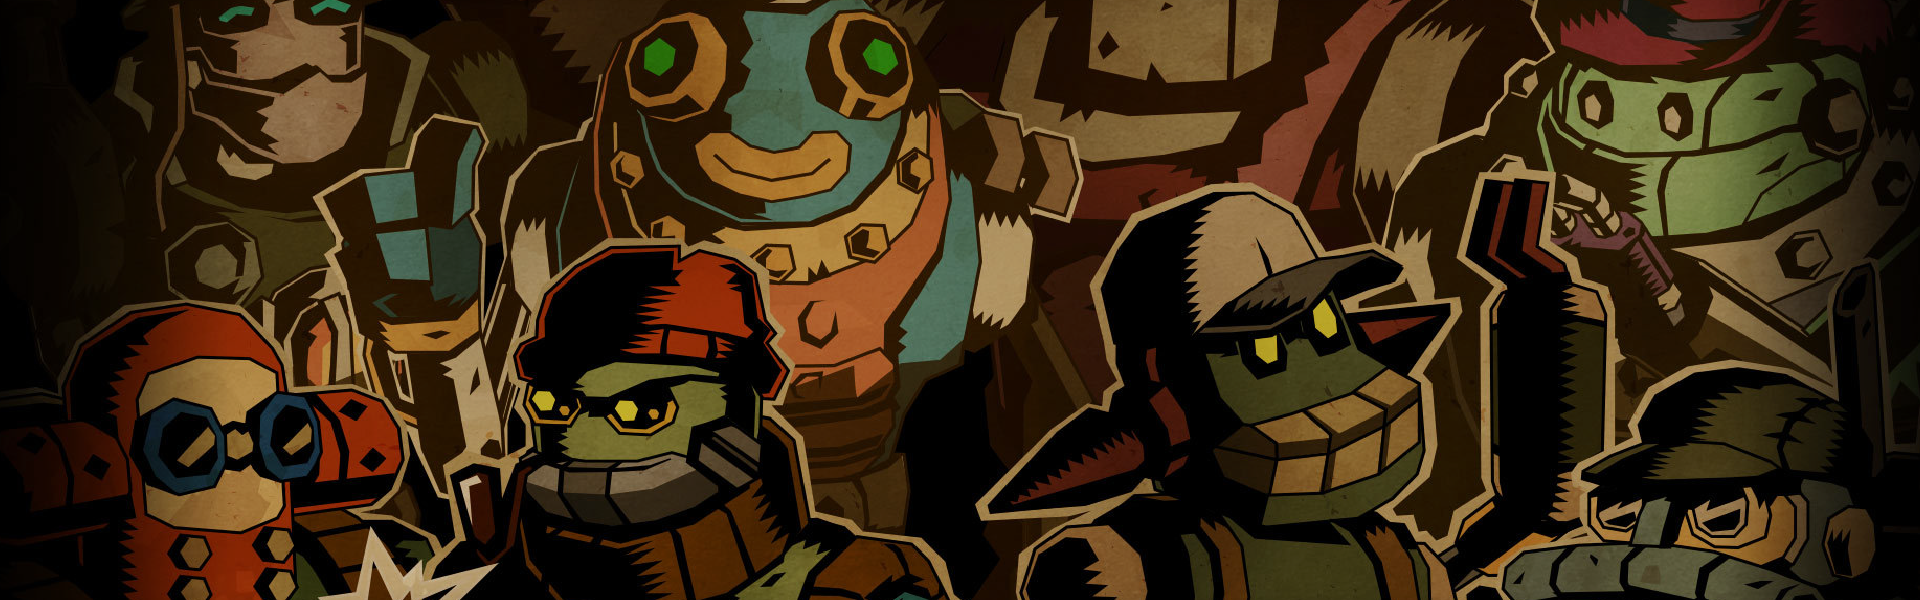 Steamworld Heist Distilled Review